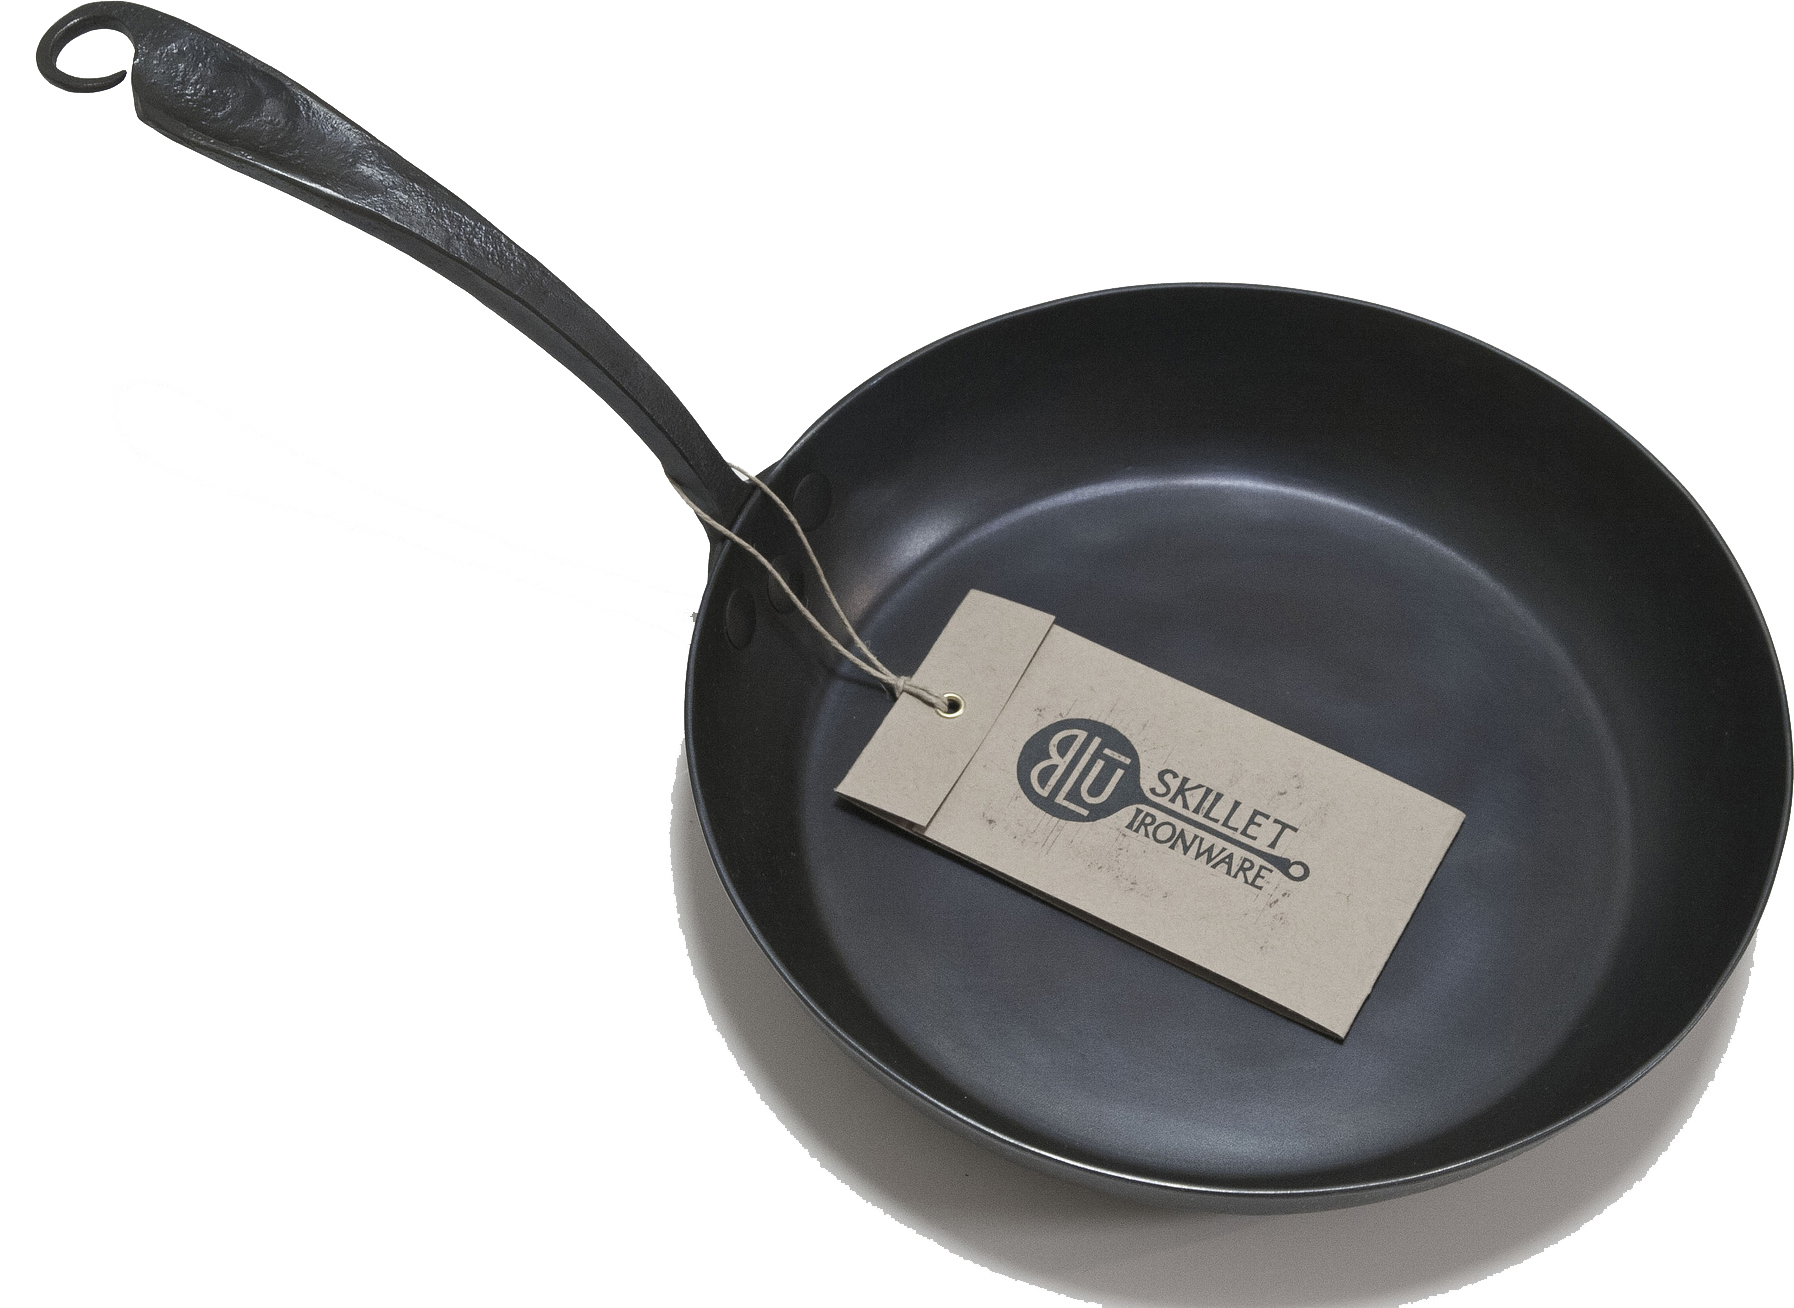 "13"" Fry Pan by Blu Skillet Ironware"